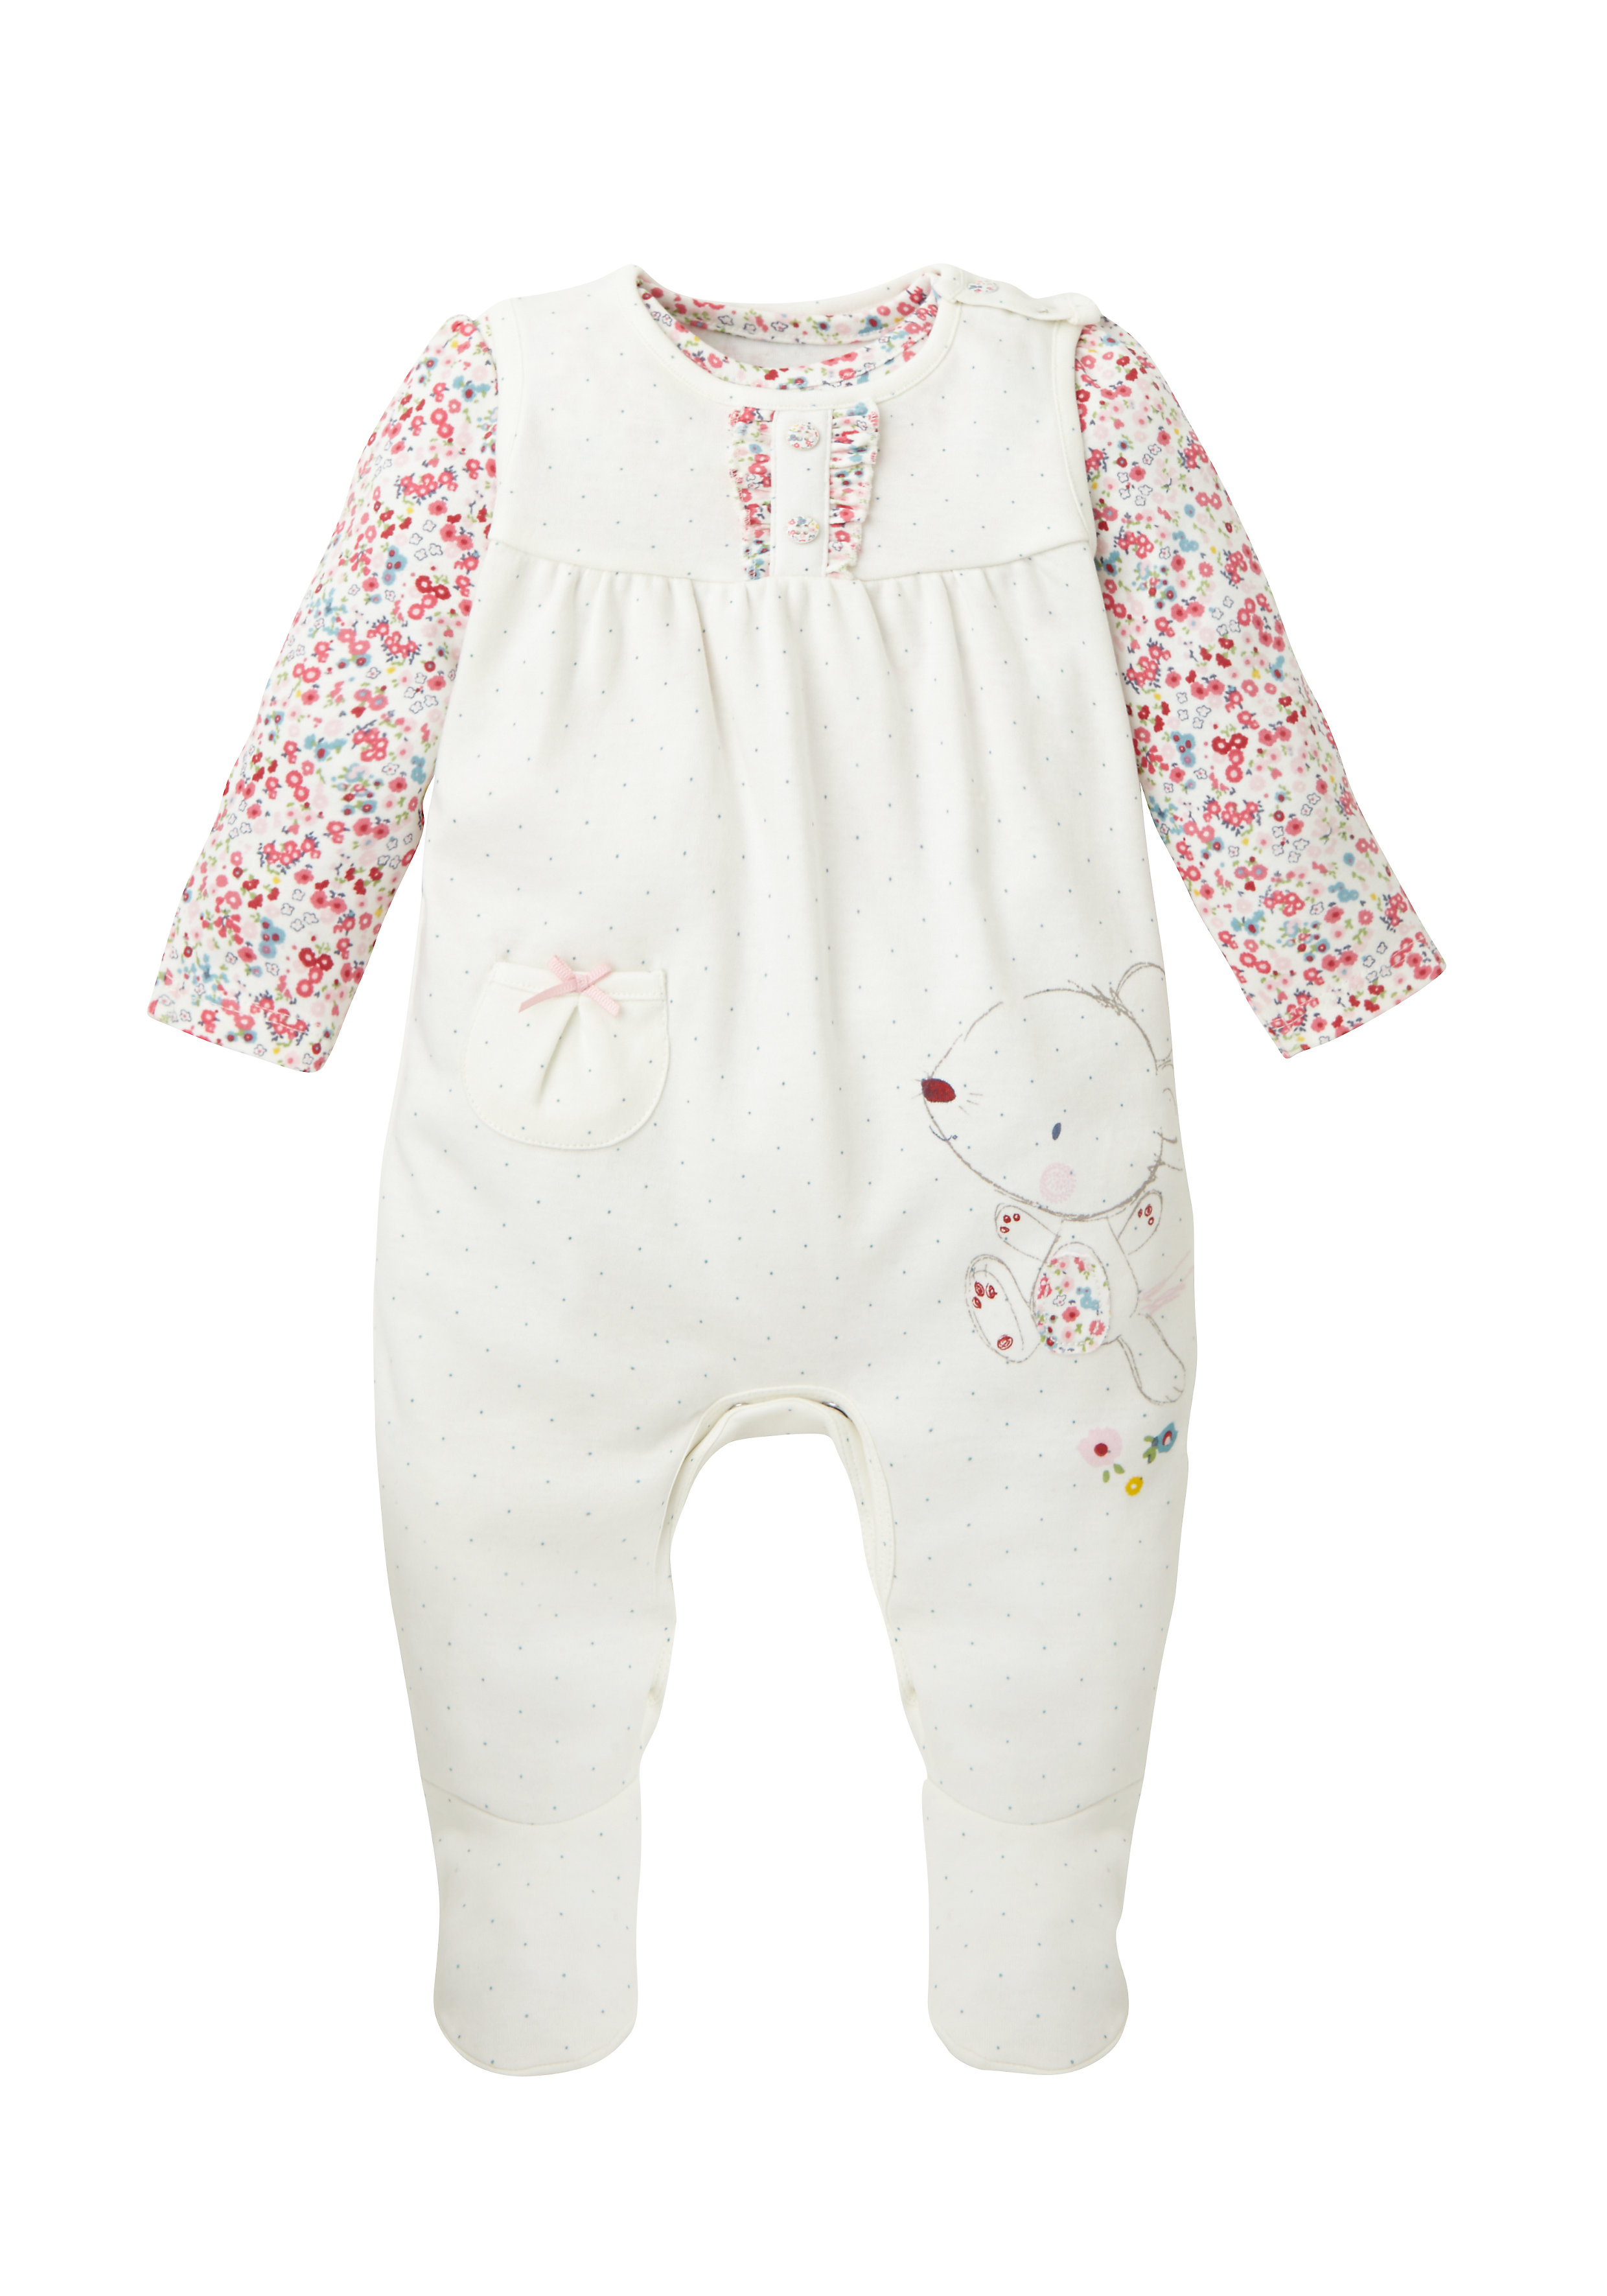 Mothercare | Girls Full Sleeves Dungaree Set Floral Print - White